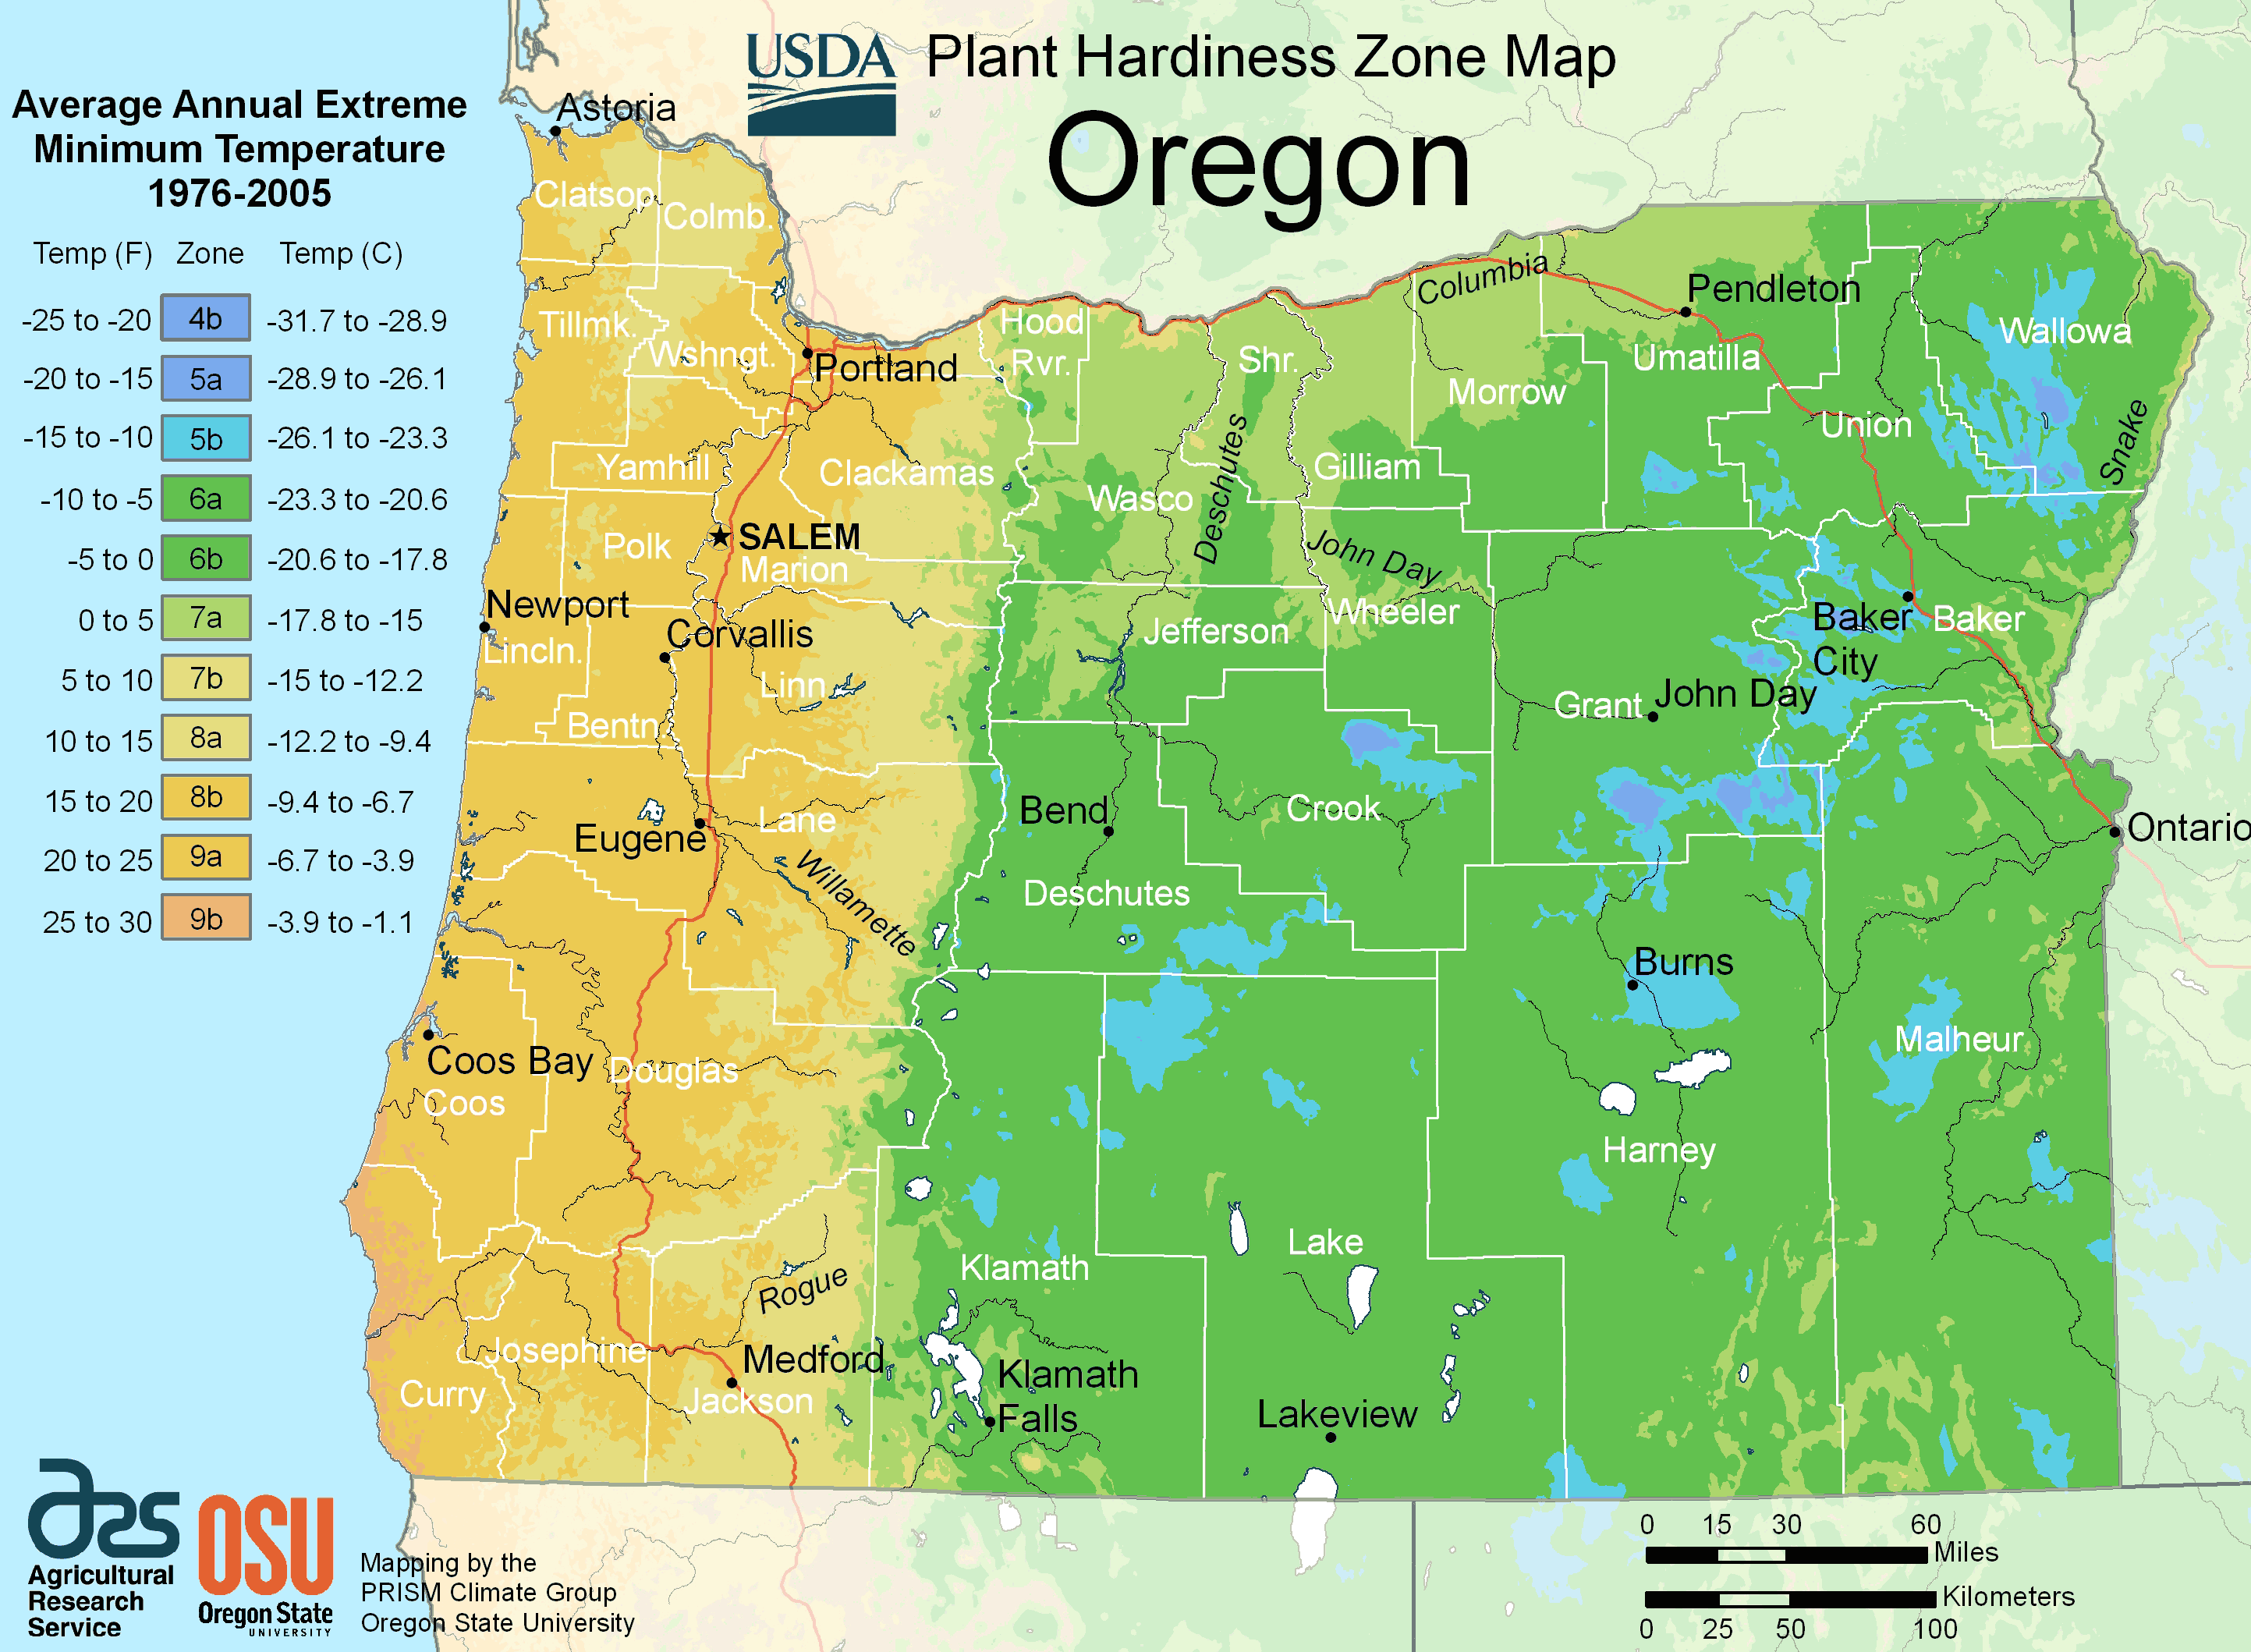 Oregon Alabama Plant Hardiness Zone Map • Mapsof.net on